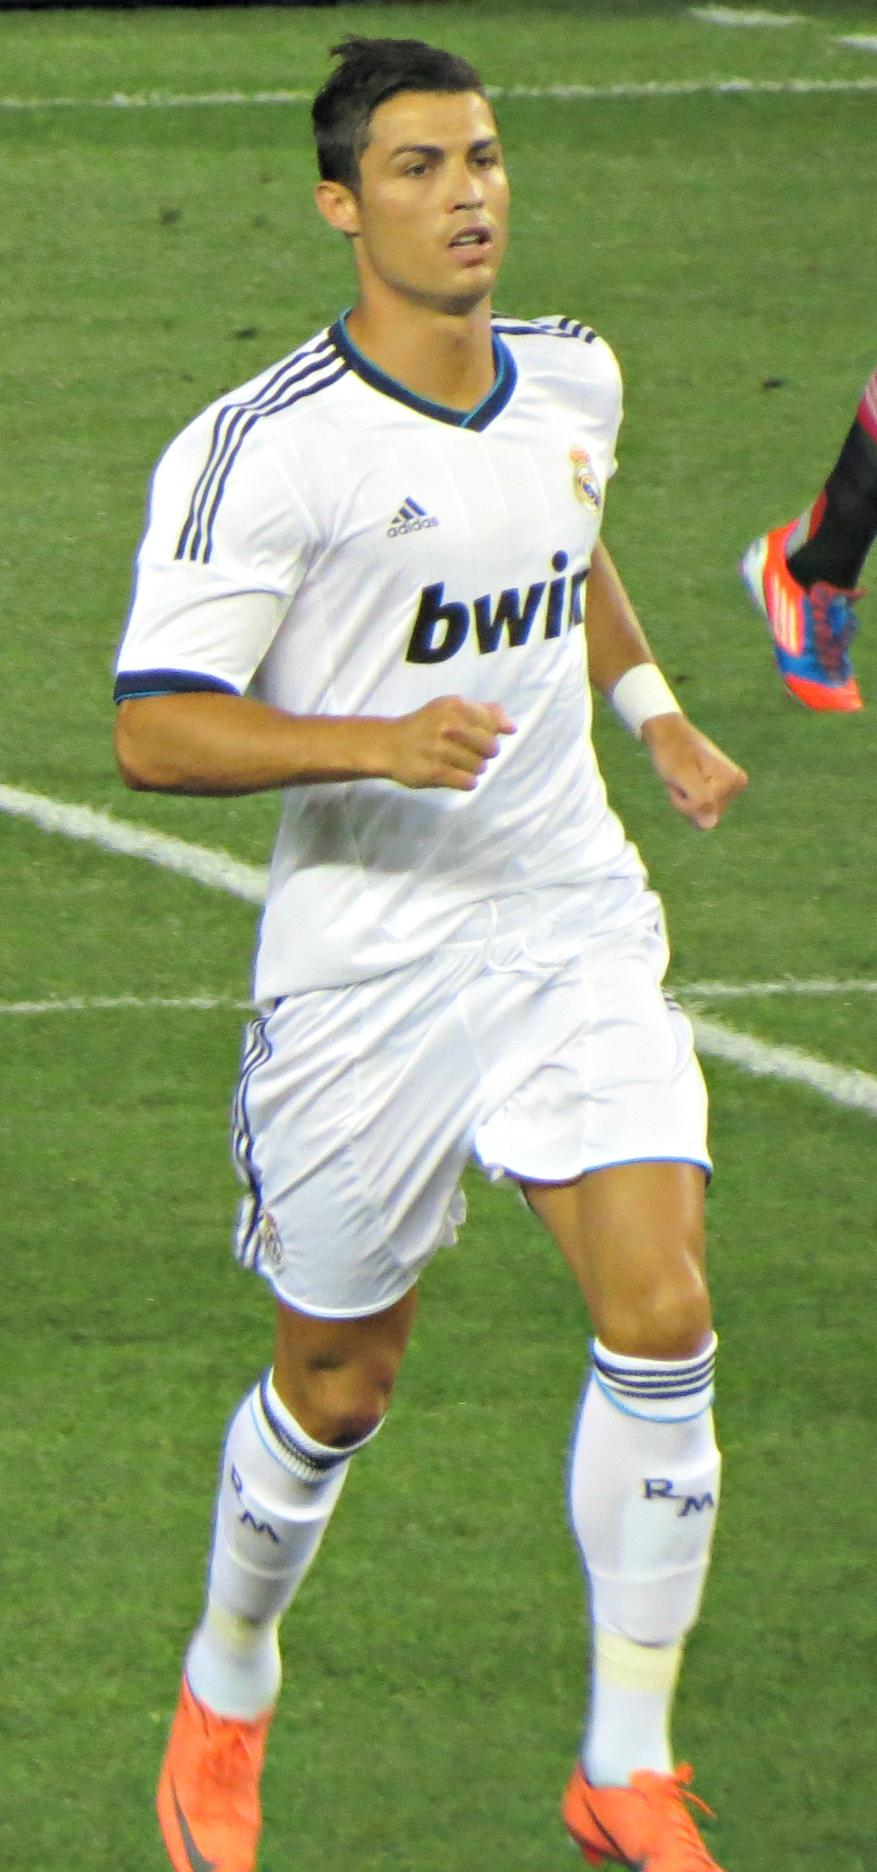 Description Cristiano Ronaldo  2012 JPG